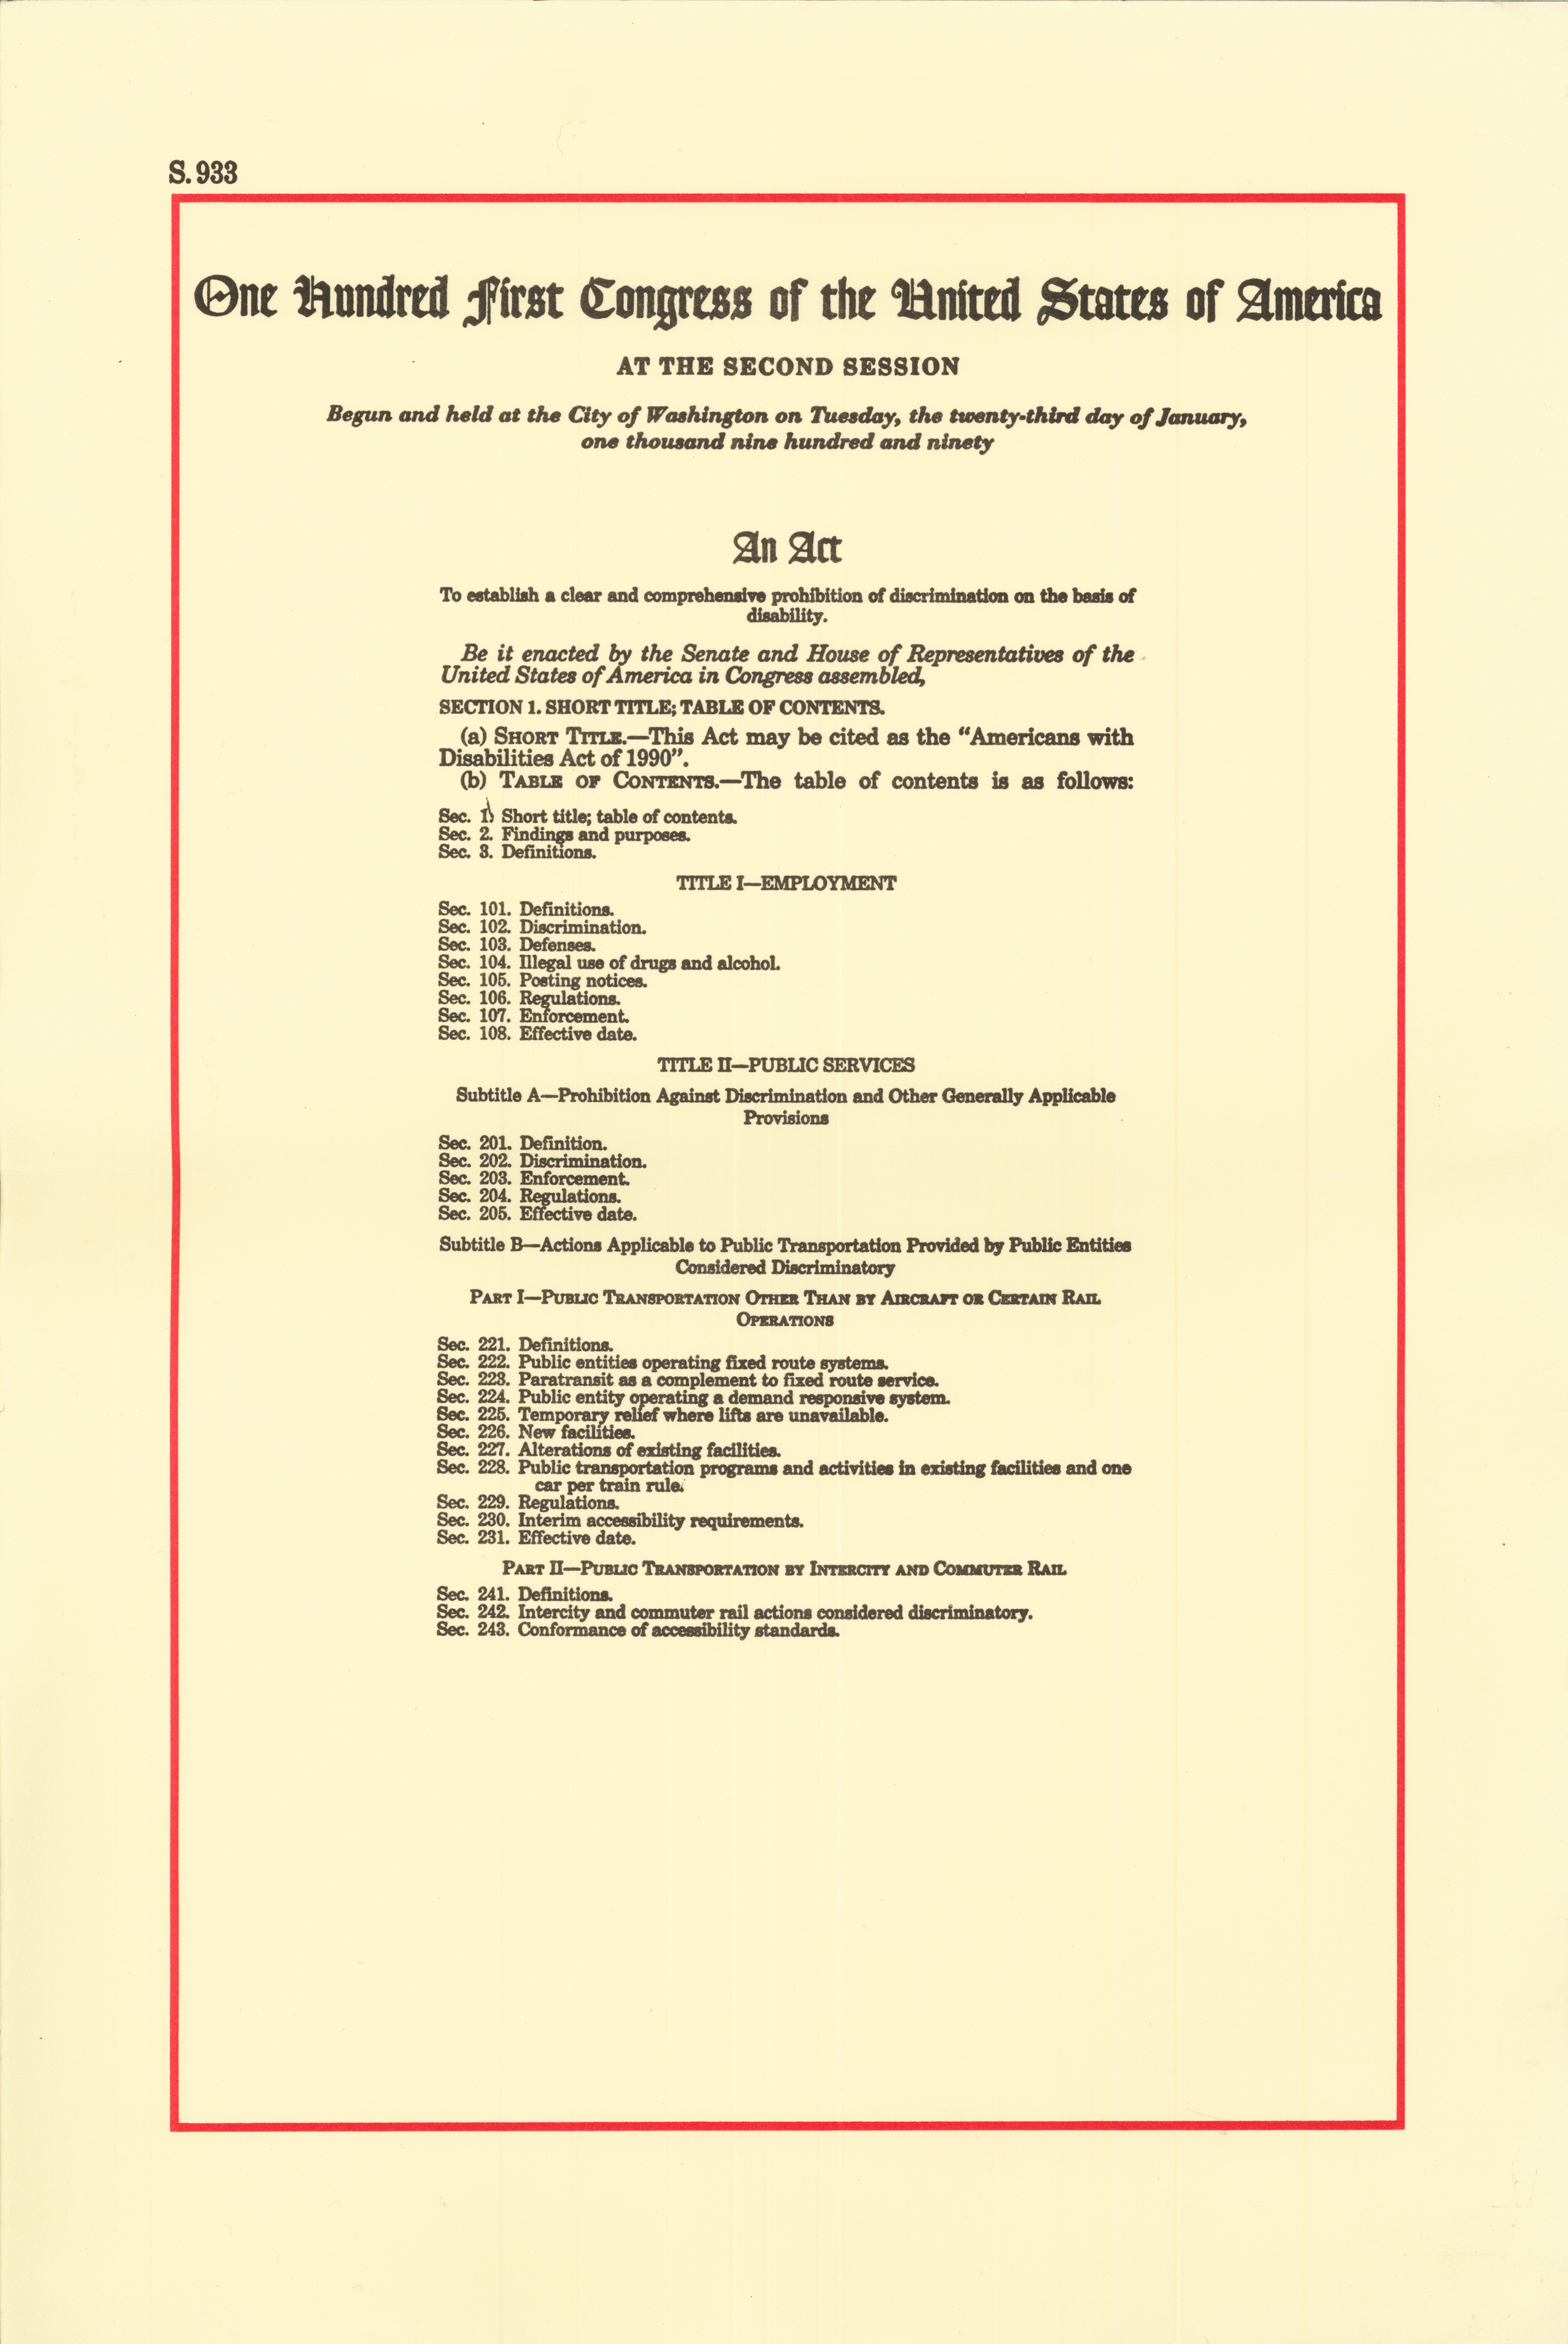 file:americans with disabilities act of 1990, page 1 - wikimedia